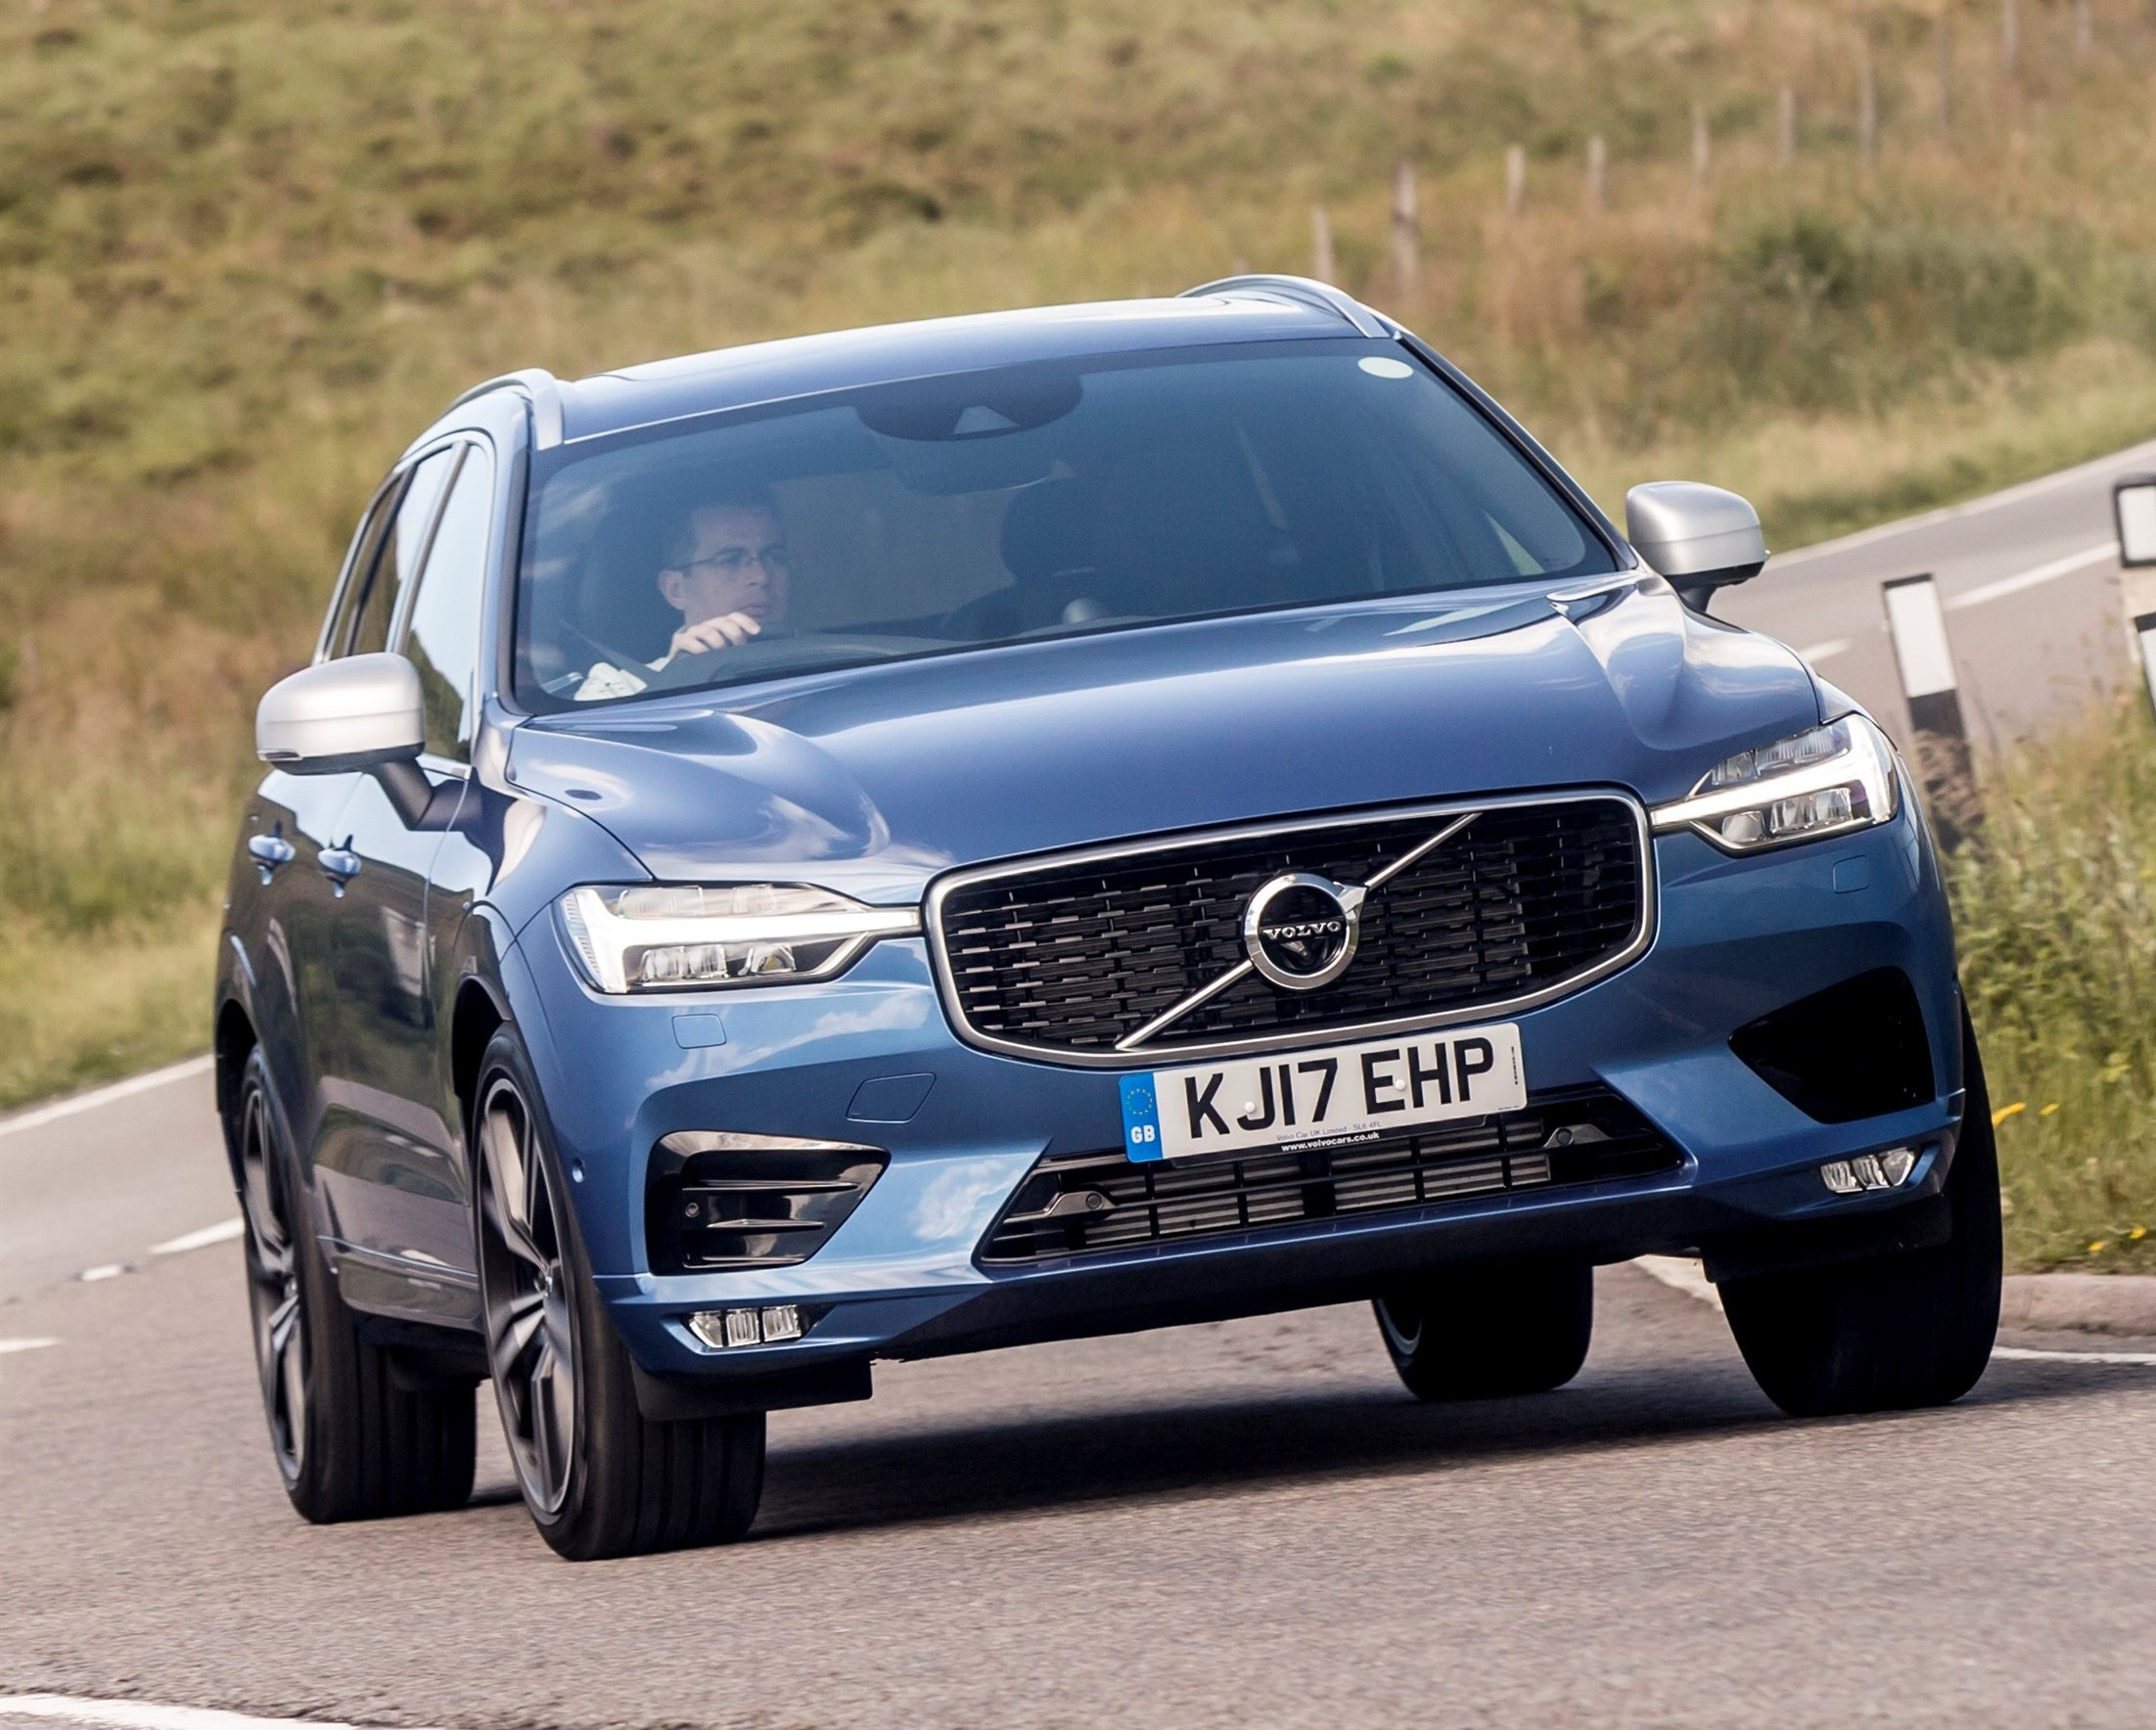 of new preview safety roadshow style chock is and volvo full auto hybrid